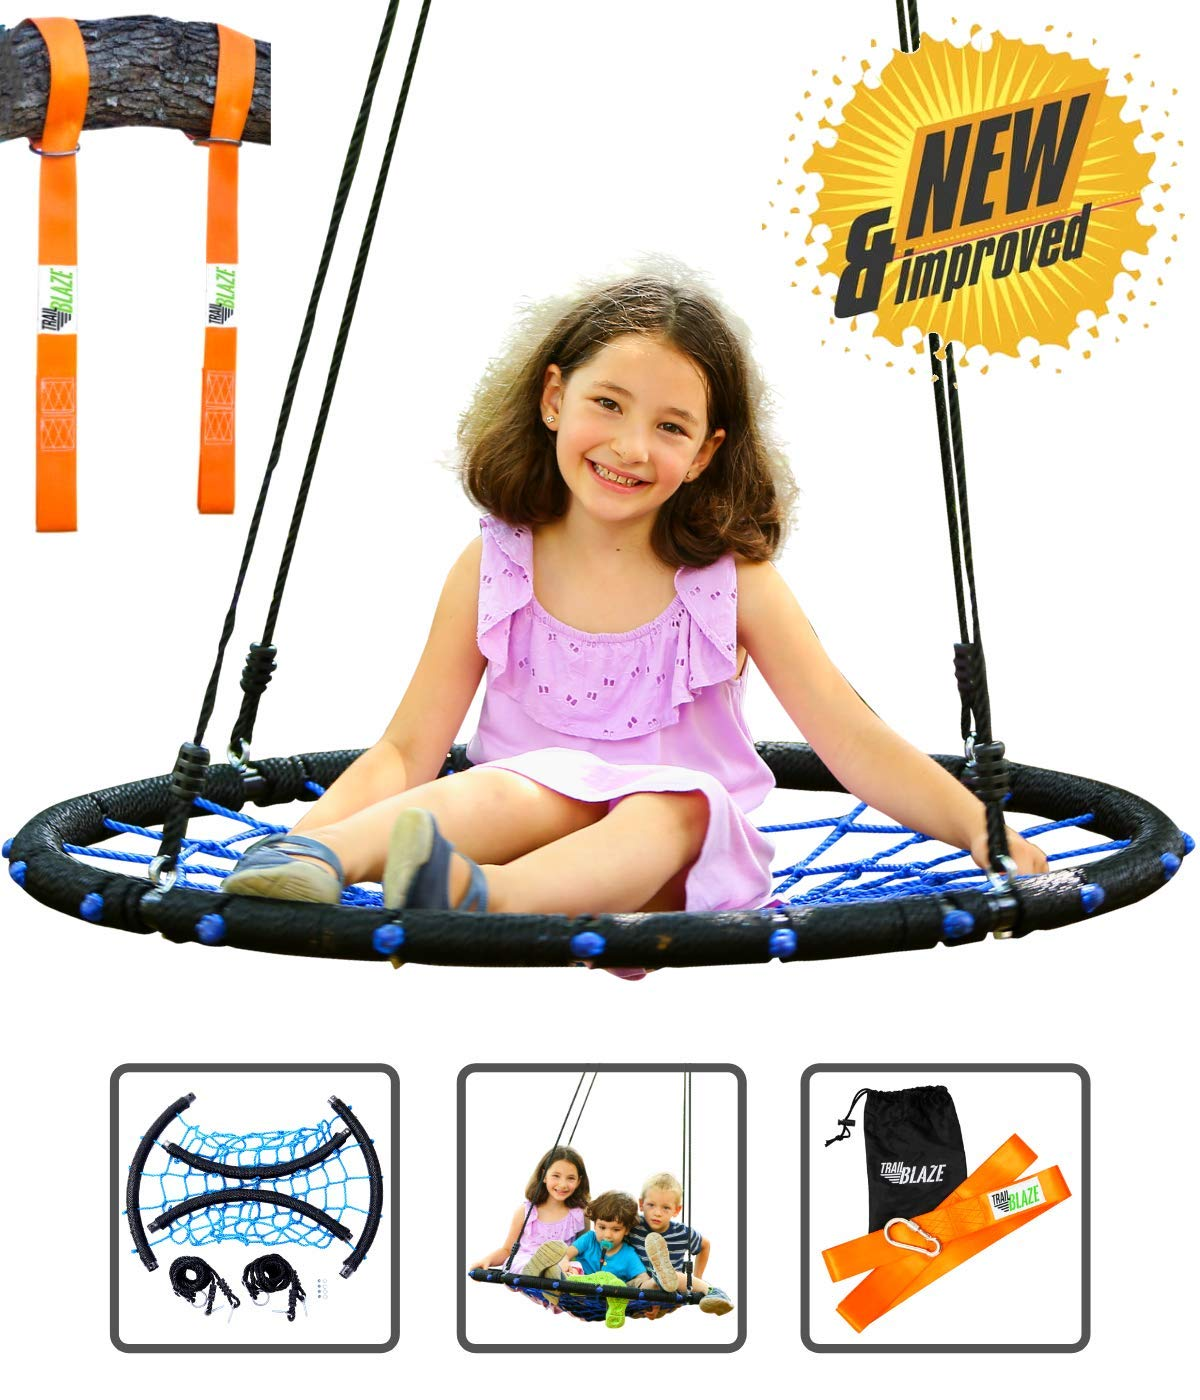 Trailblaze Spider Web Tree Swing - [Upgraded] Double Straps Hanging Kit - Extra Strong Net Disk Swing for Tree Holds 650 lbs - Kids Saucer Tire Swings for Outside Quick & Easy to Install by Trailblaze